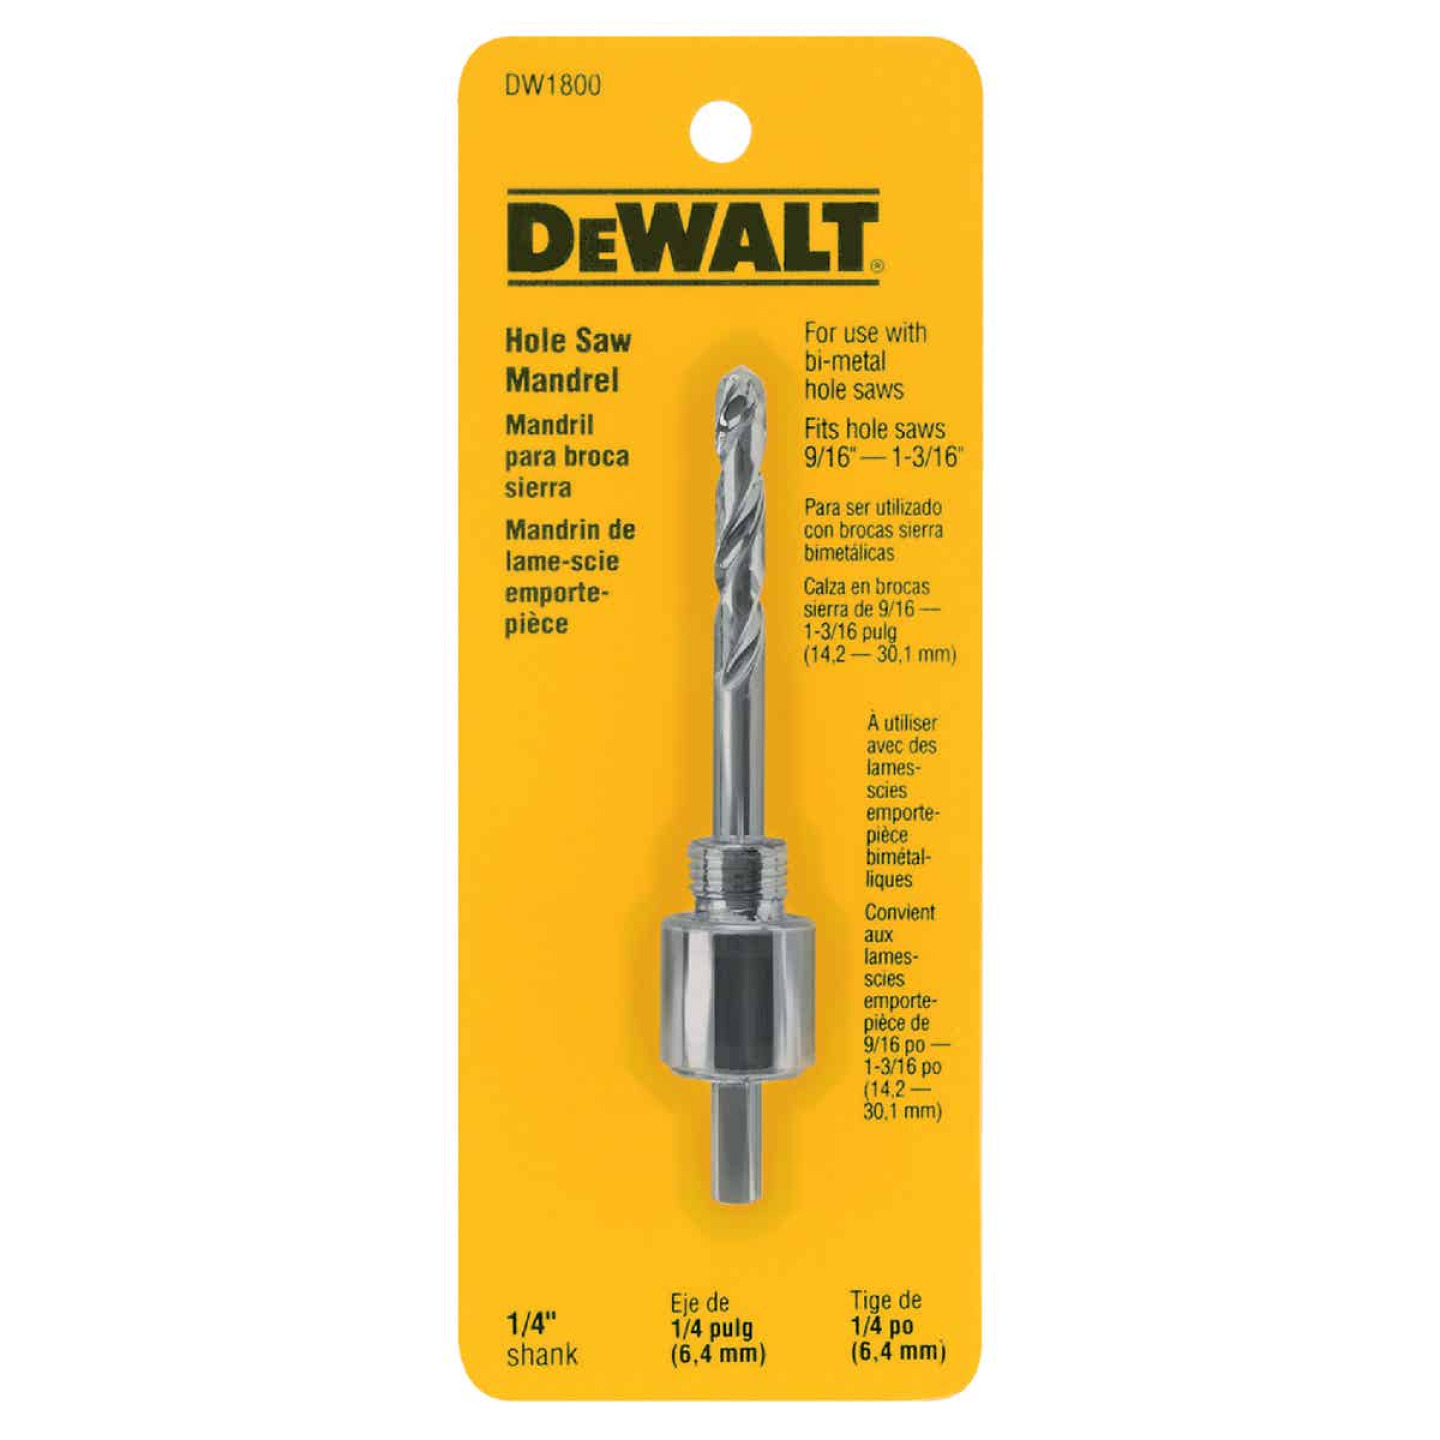 DeWalt 1/4 In. Hex Shank Hole Saw Mandrel Fits Hole Saws 9/16 In. to 1-3/16 In. Image 1